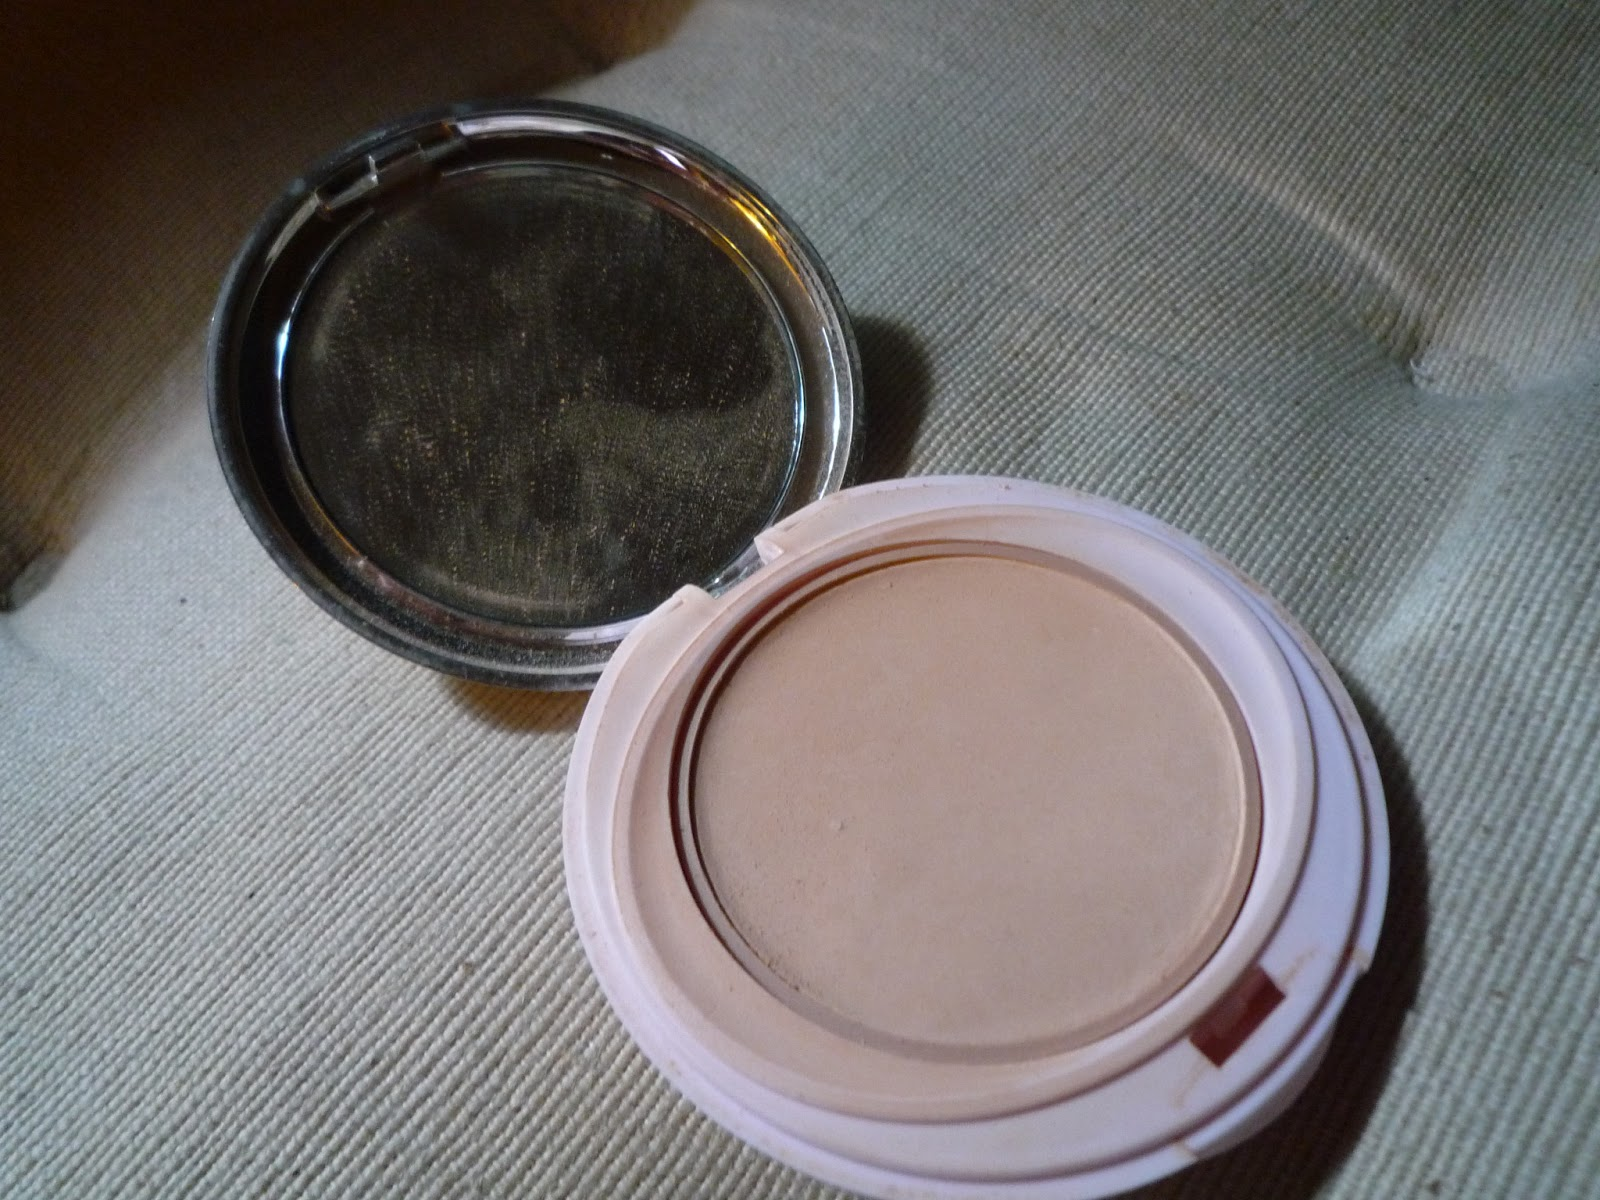 Driving gloves spf - Powdered Sunscreen Compact Spf 25 By Mistine A Thai Beauty Brand